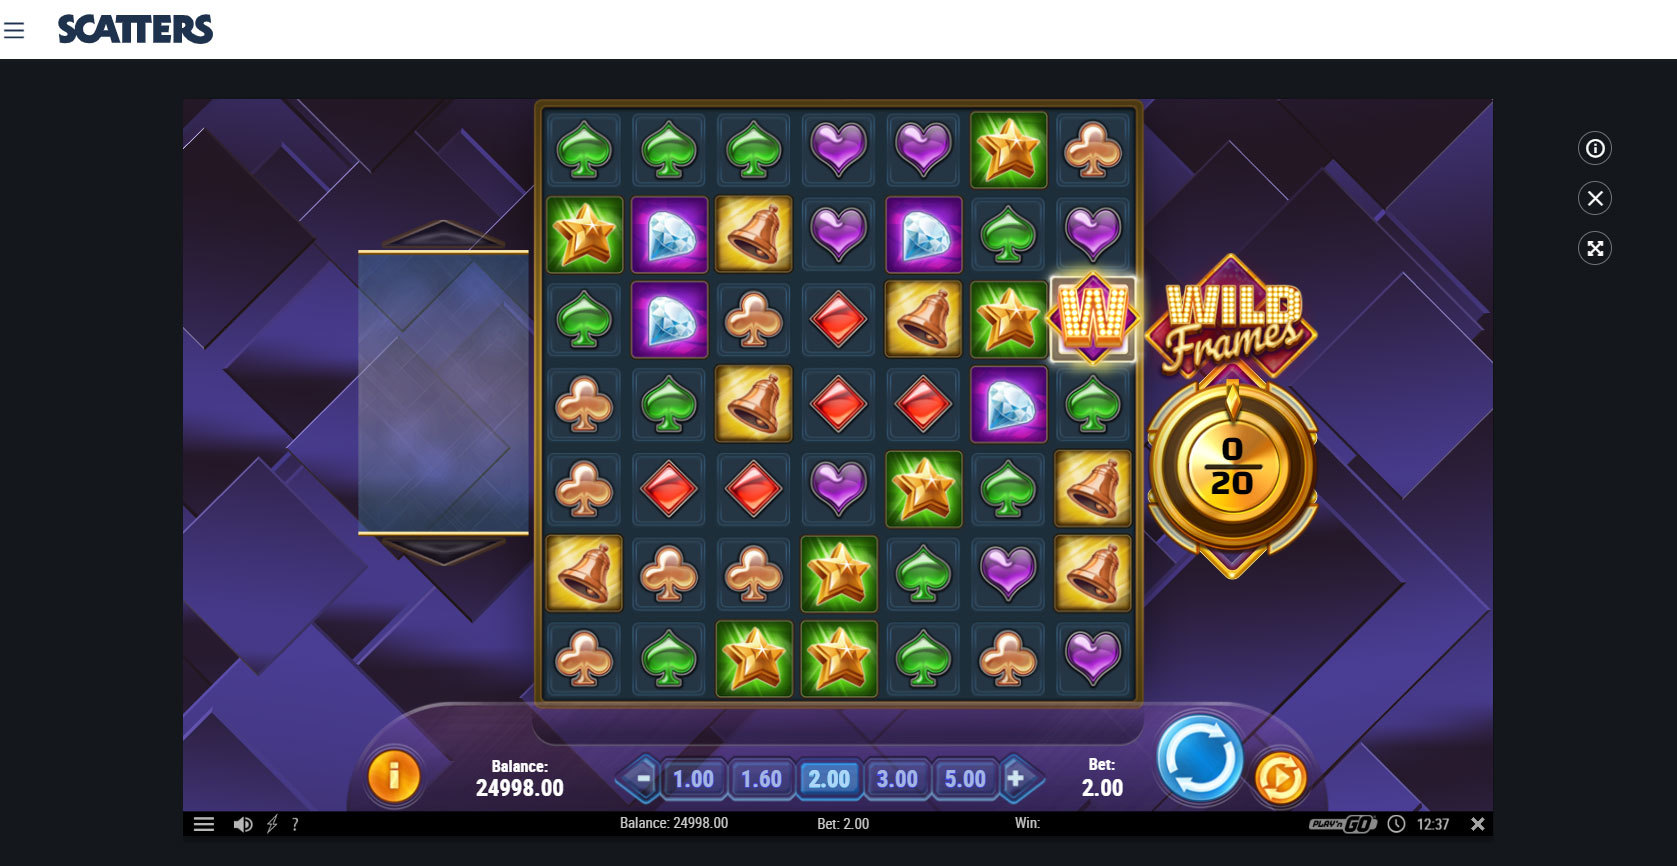 """Play """"Wild Frames Online Slot"""" at Scatters Slots Casino"""